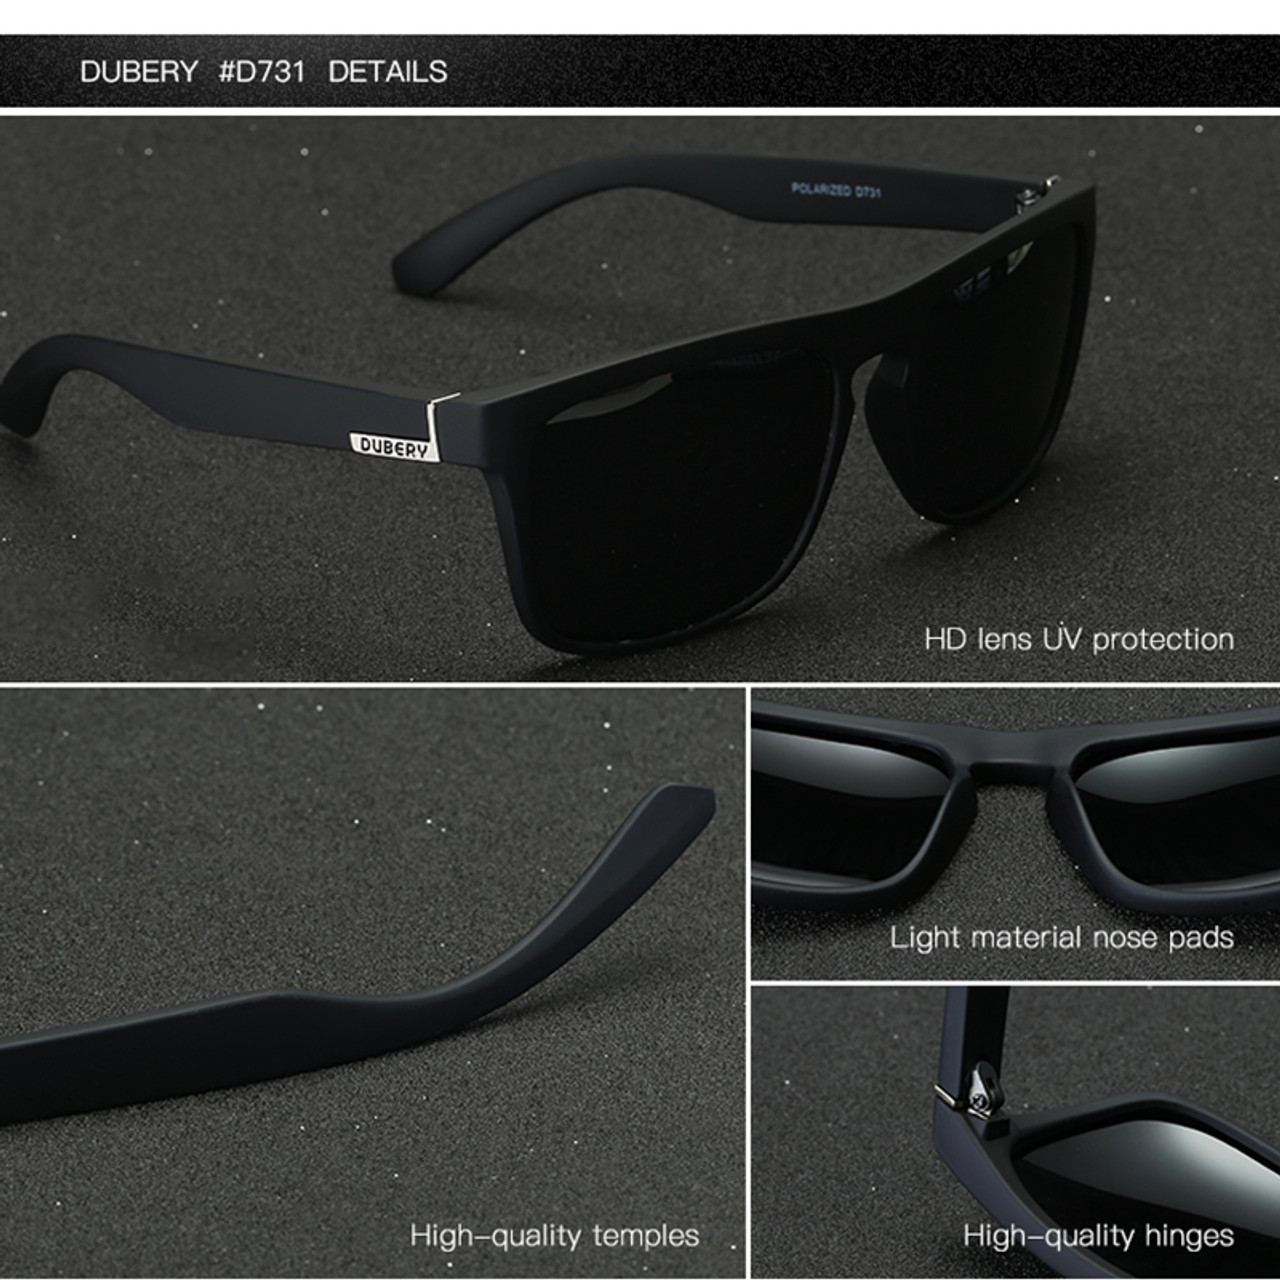 7386ae727f ... DUBERY Polarized Sunglasses Men s Aviation Driving Shades Male Sun  Glasses For Men Retro Cheap 2017 Luxury ...